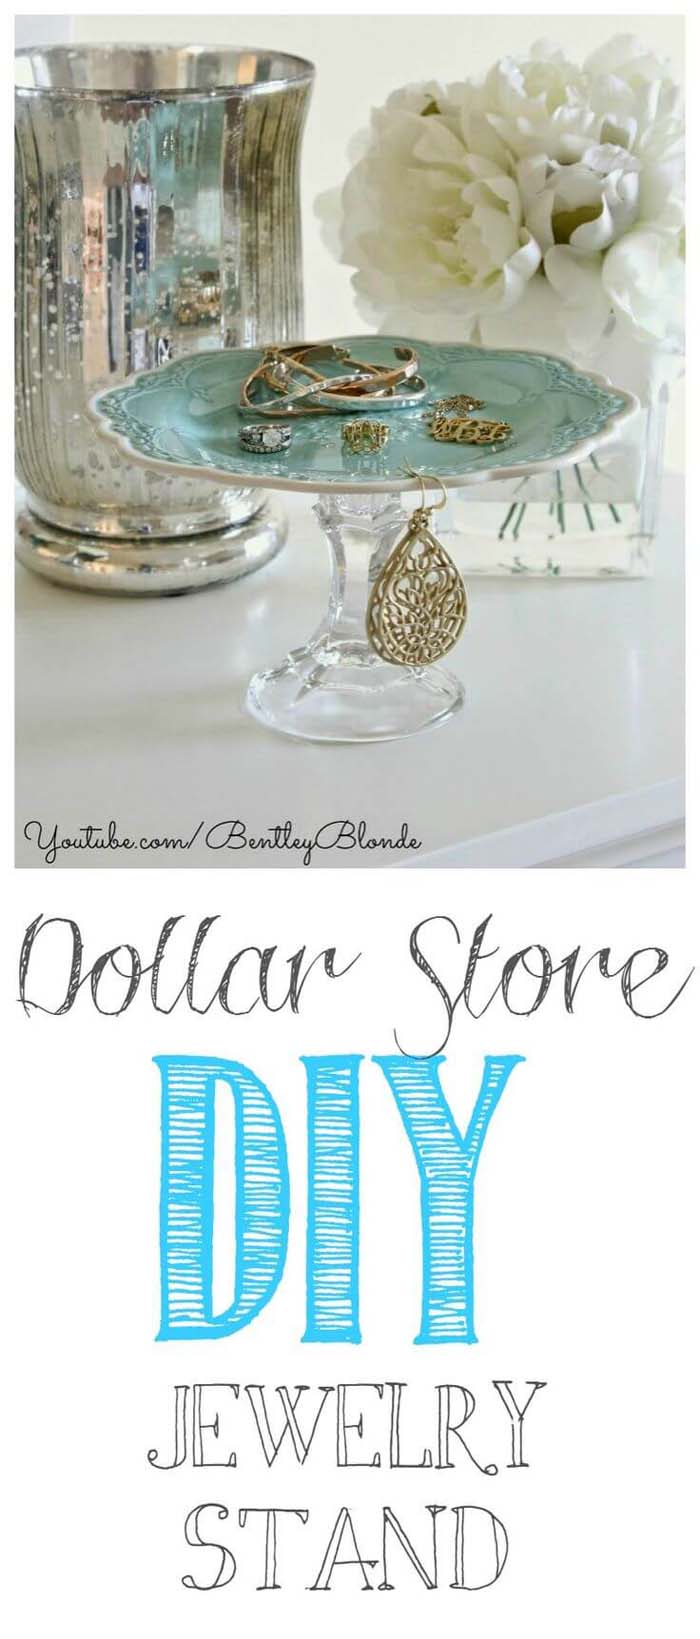 Dollar Store DIY Make Up and Jewelry Stand #dollarstore #diy #homedecor #decorhomeideas